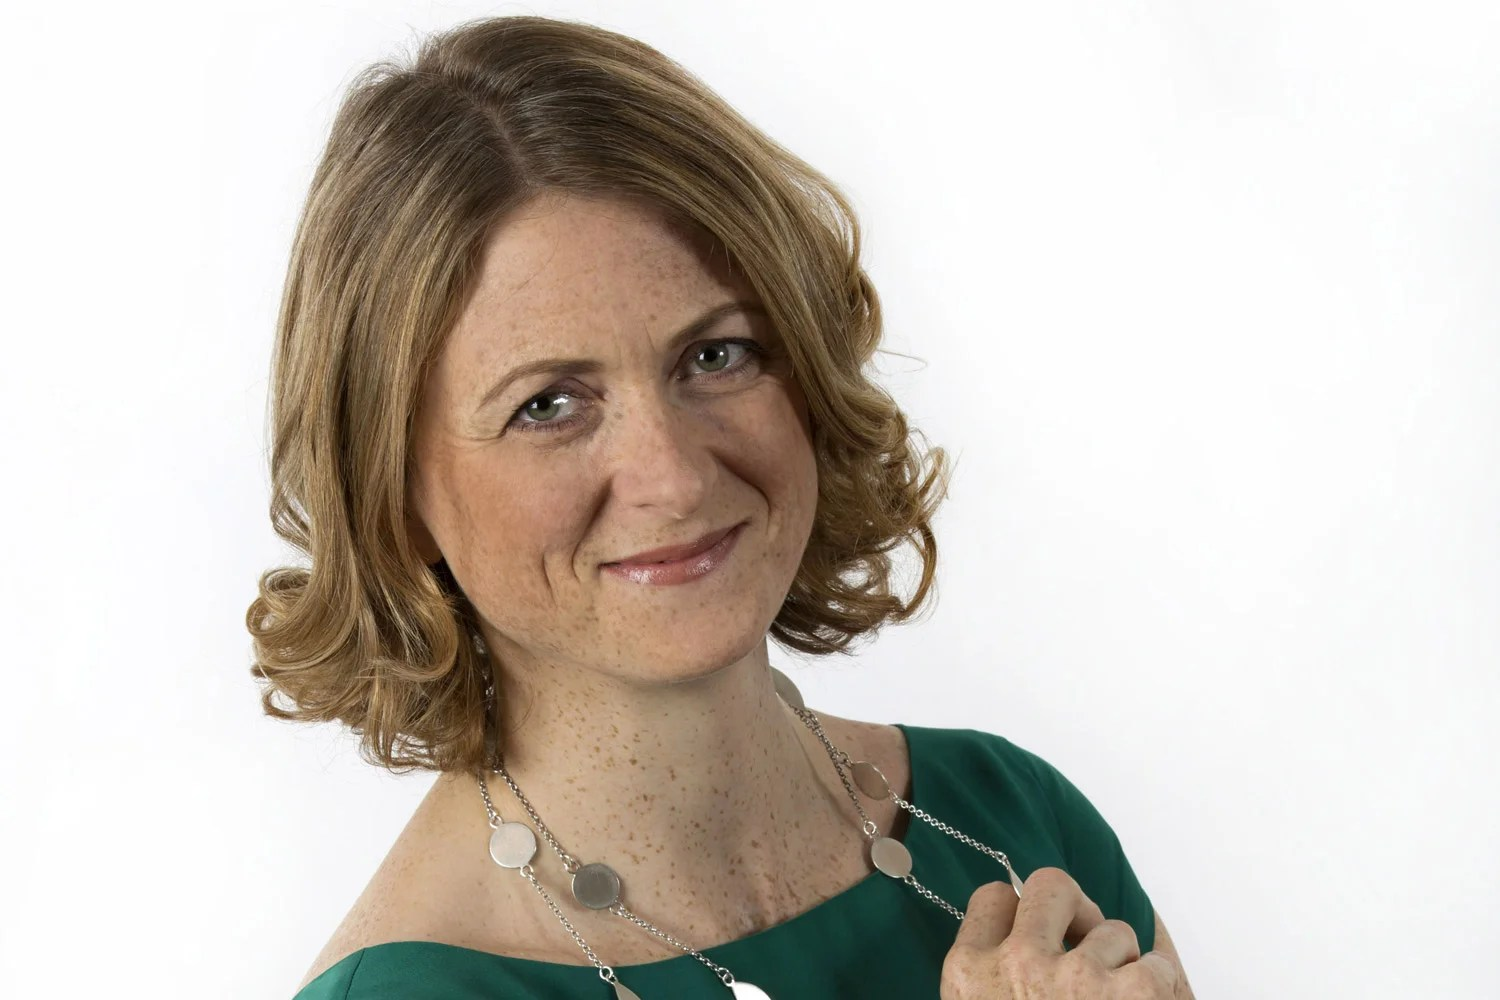 rachelburdenbbc2607a Radio 5 Live host Rachel Burden apologises for swearing live on breakfast radio